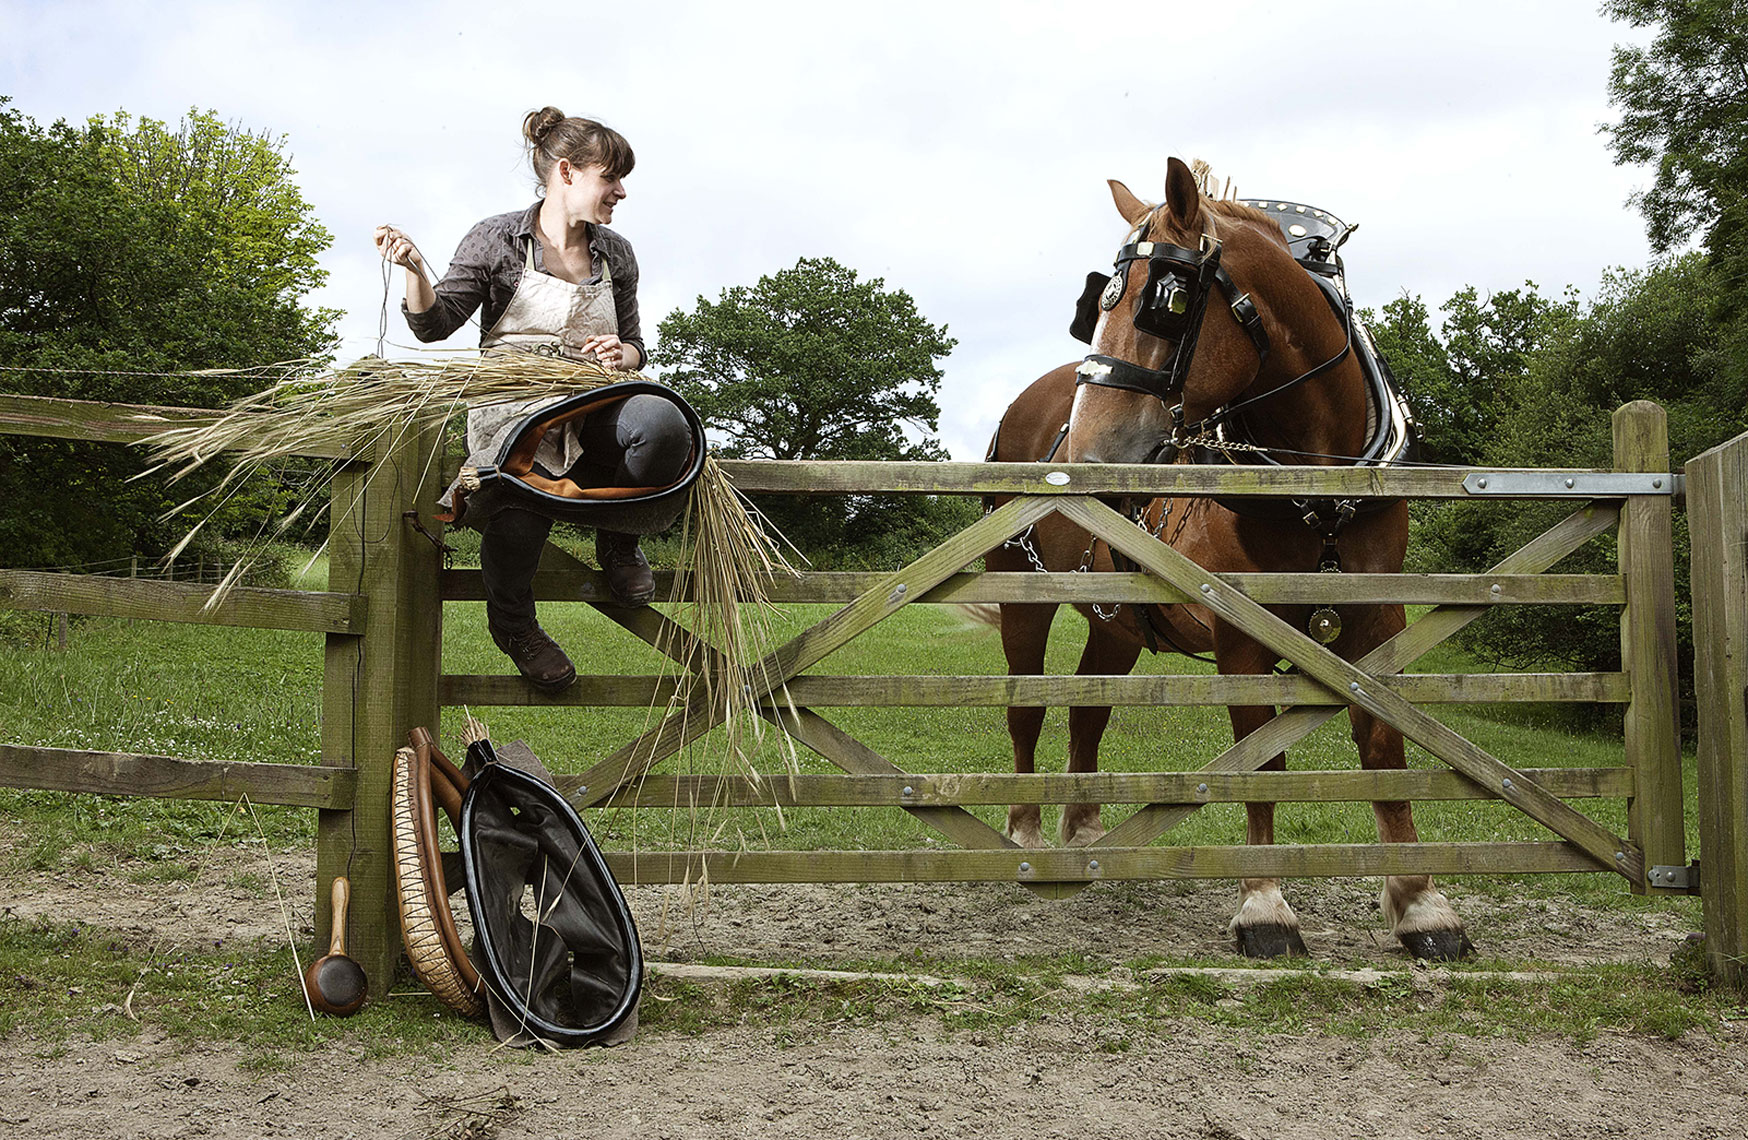 CountryLife_Cannon_KateHetheringtonCollarsAndHarness145